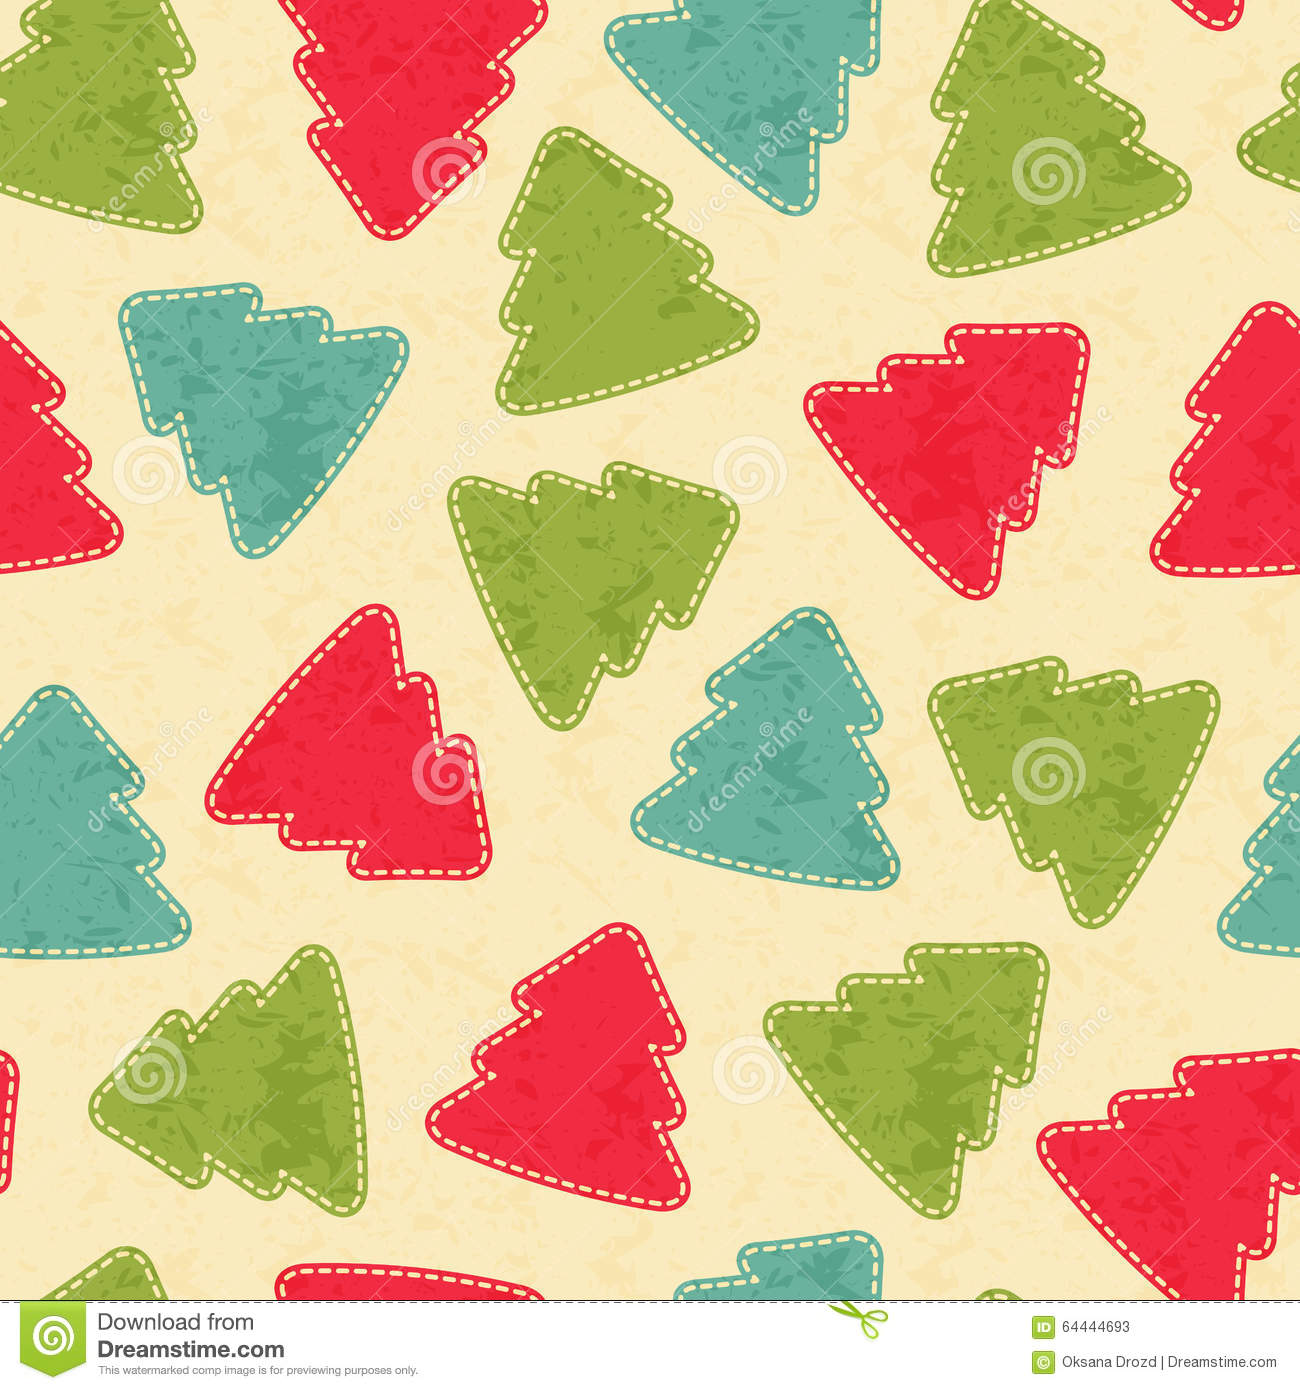 Childish Christmas seamless pattern with Christmas trees